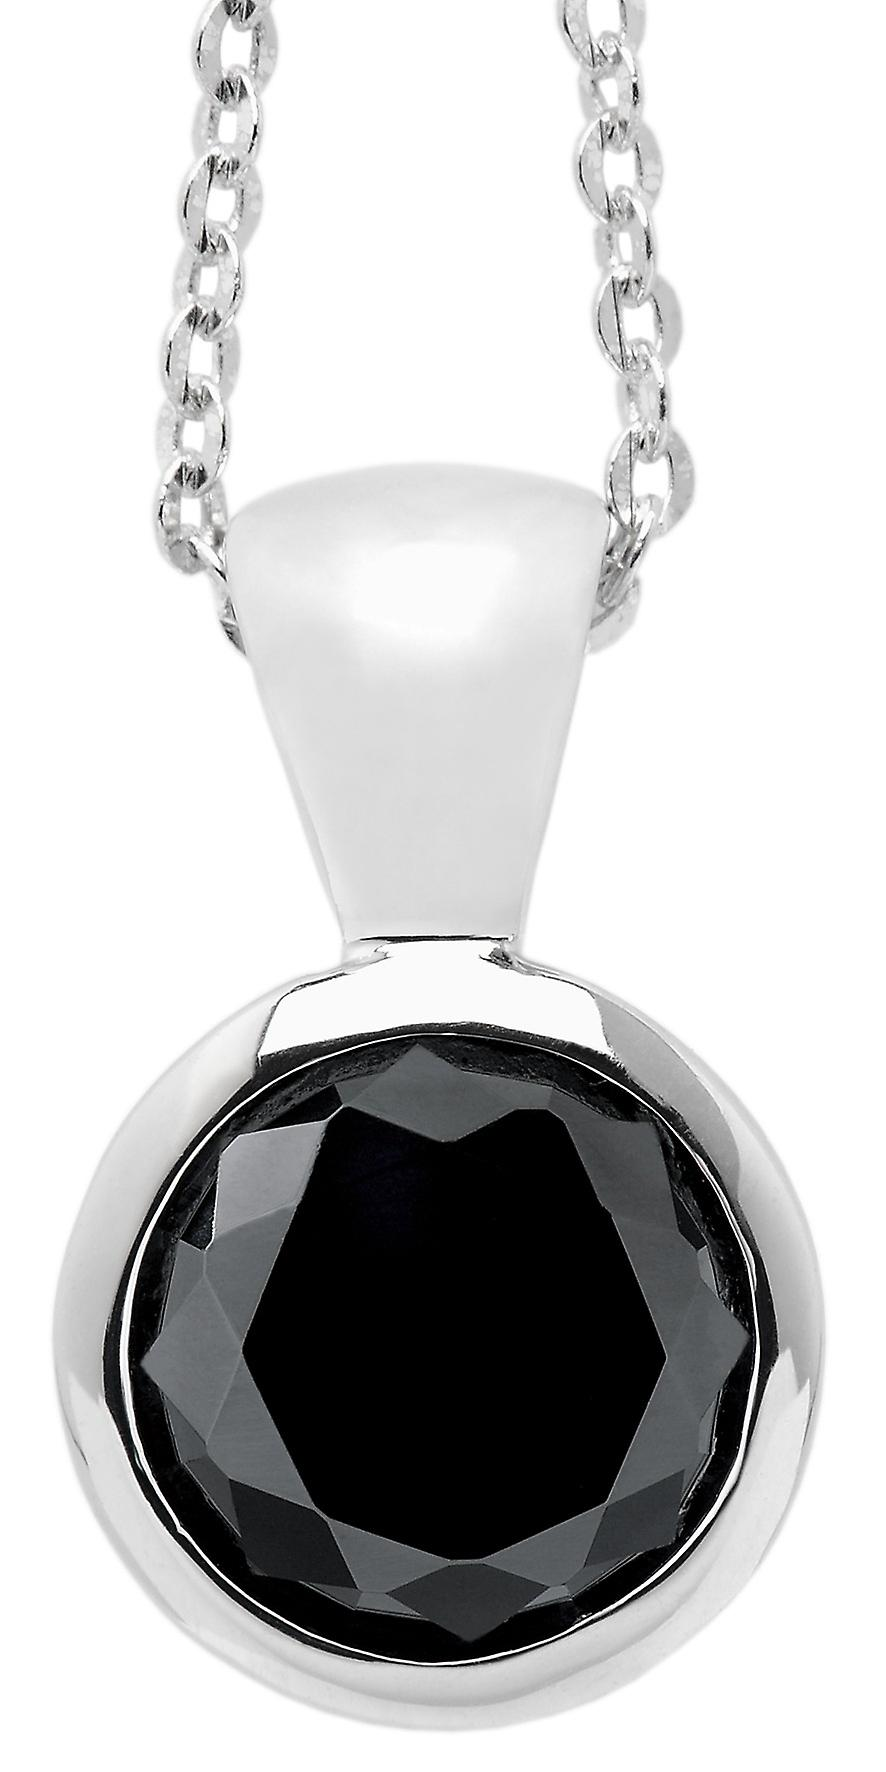 Burgmeister chain and pendant JBM1008-321, 925 sterling silver rhodanized, black zirconia